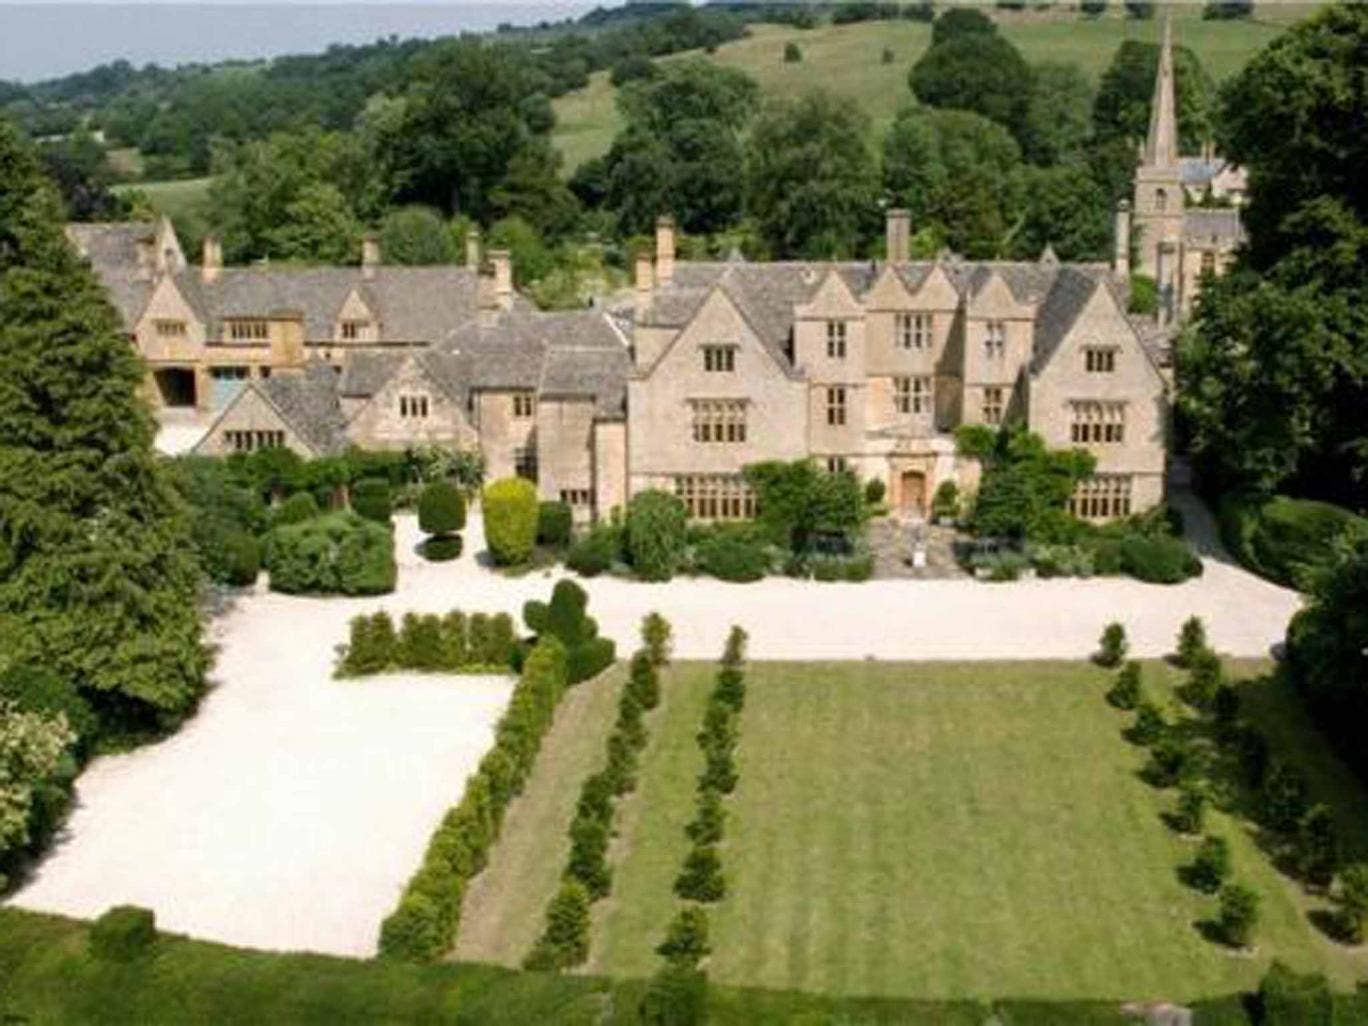 10 bedroom detached house for sale, Stanton, Broadway, Gloucestershire WR12. Price on application, on with Savills.